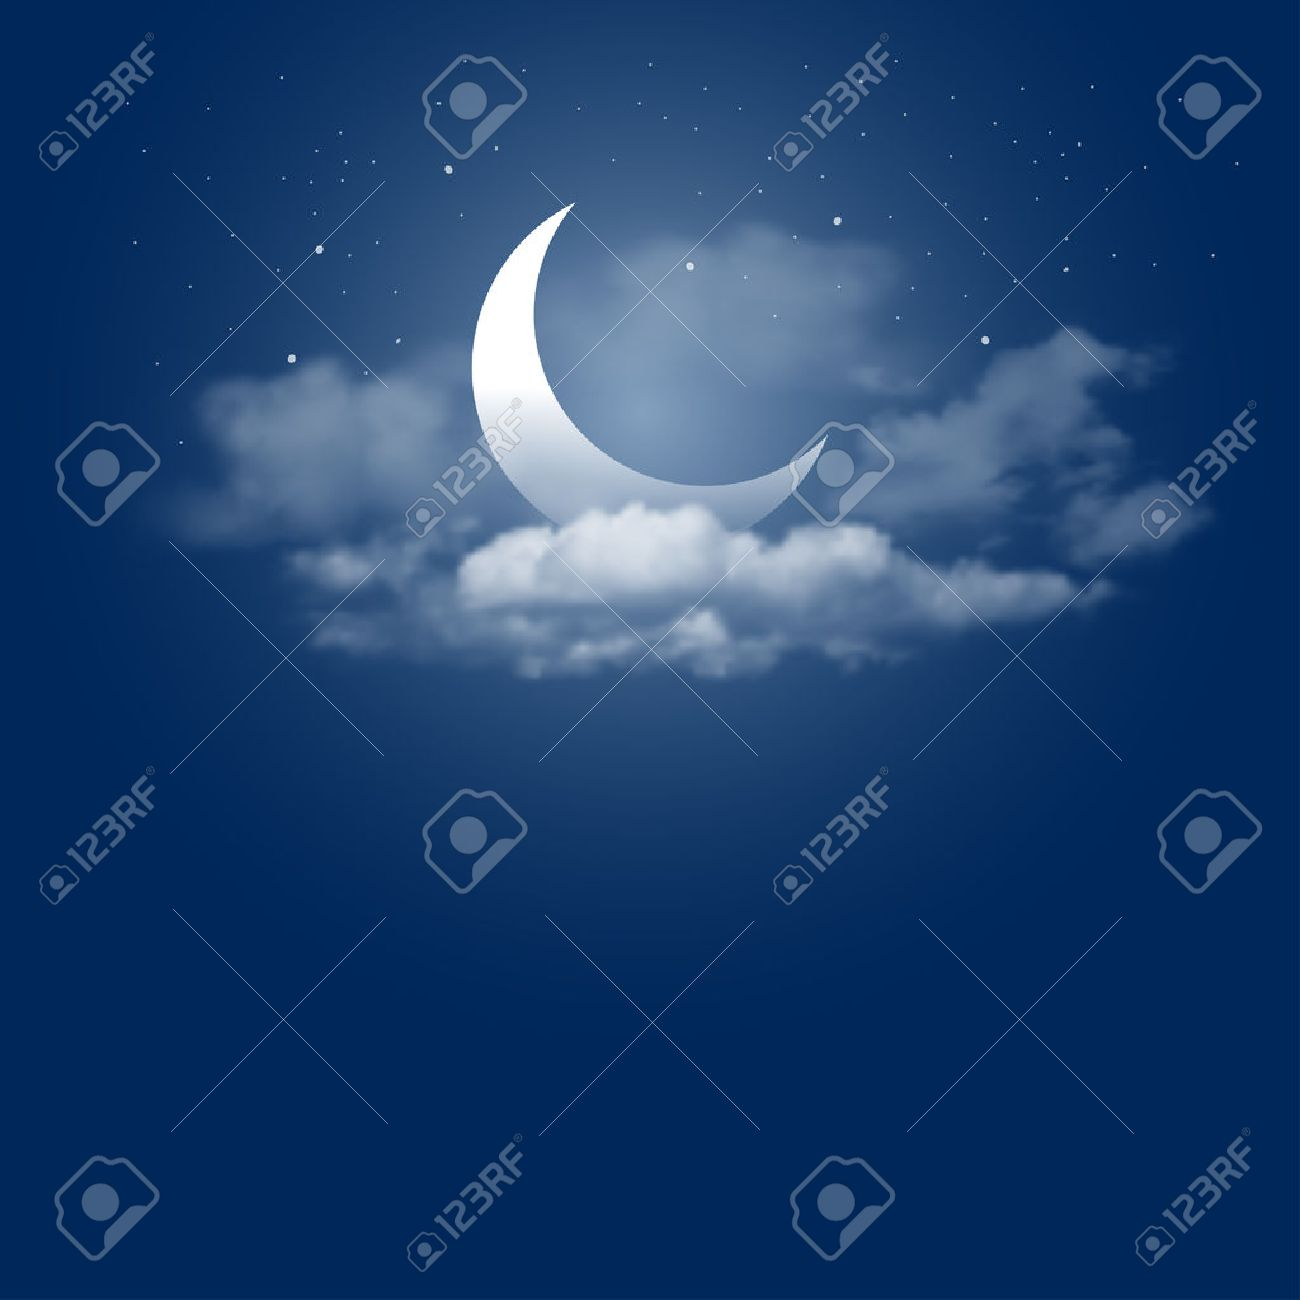 Mystical Night sky background with half moon, clouds and stars. Moonlight night. Vector illustration. - 55571655